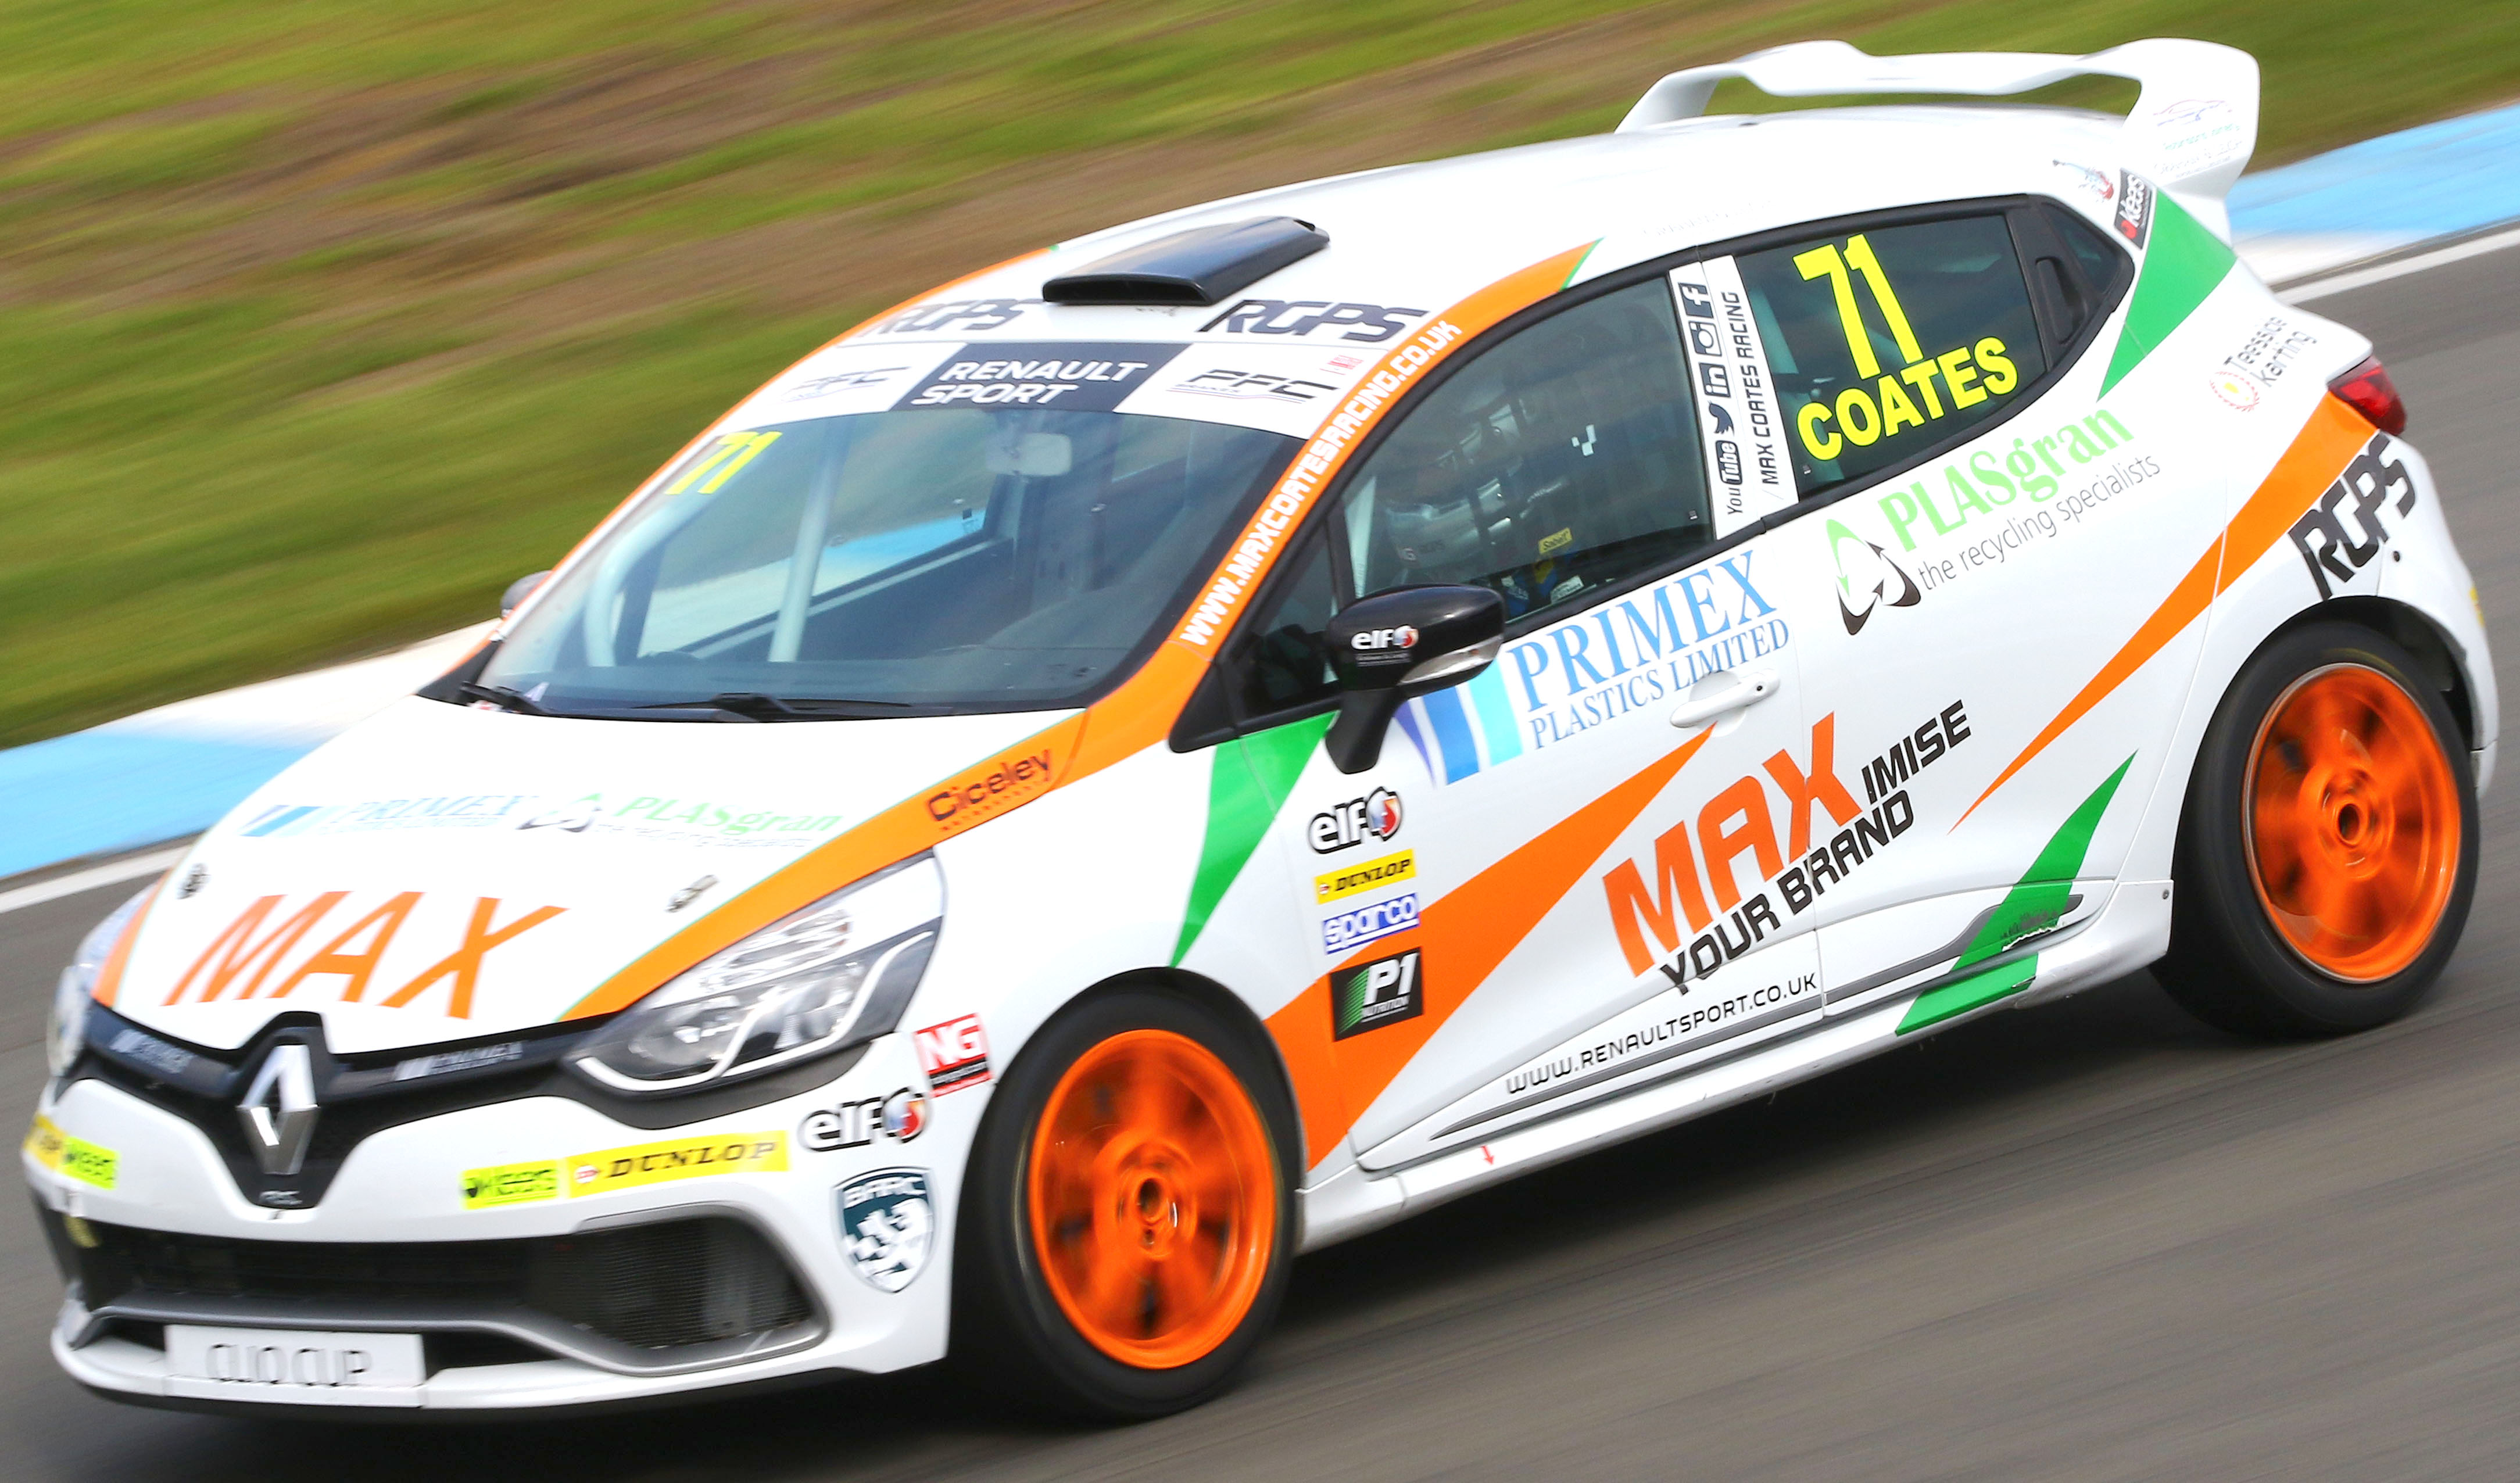 Aycliffe Firm Sponsors Racing Driver